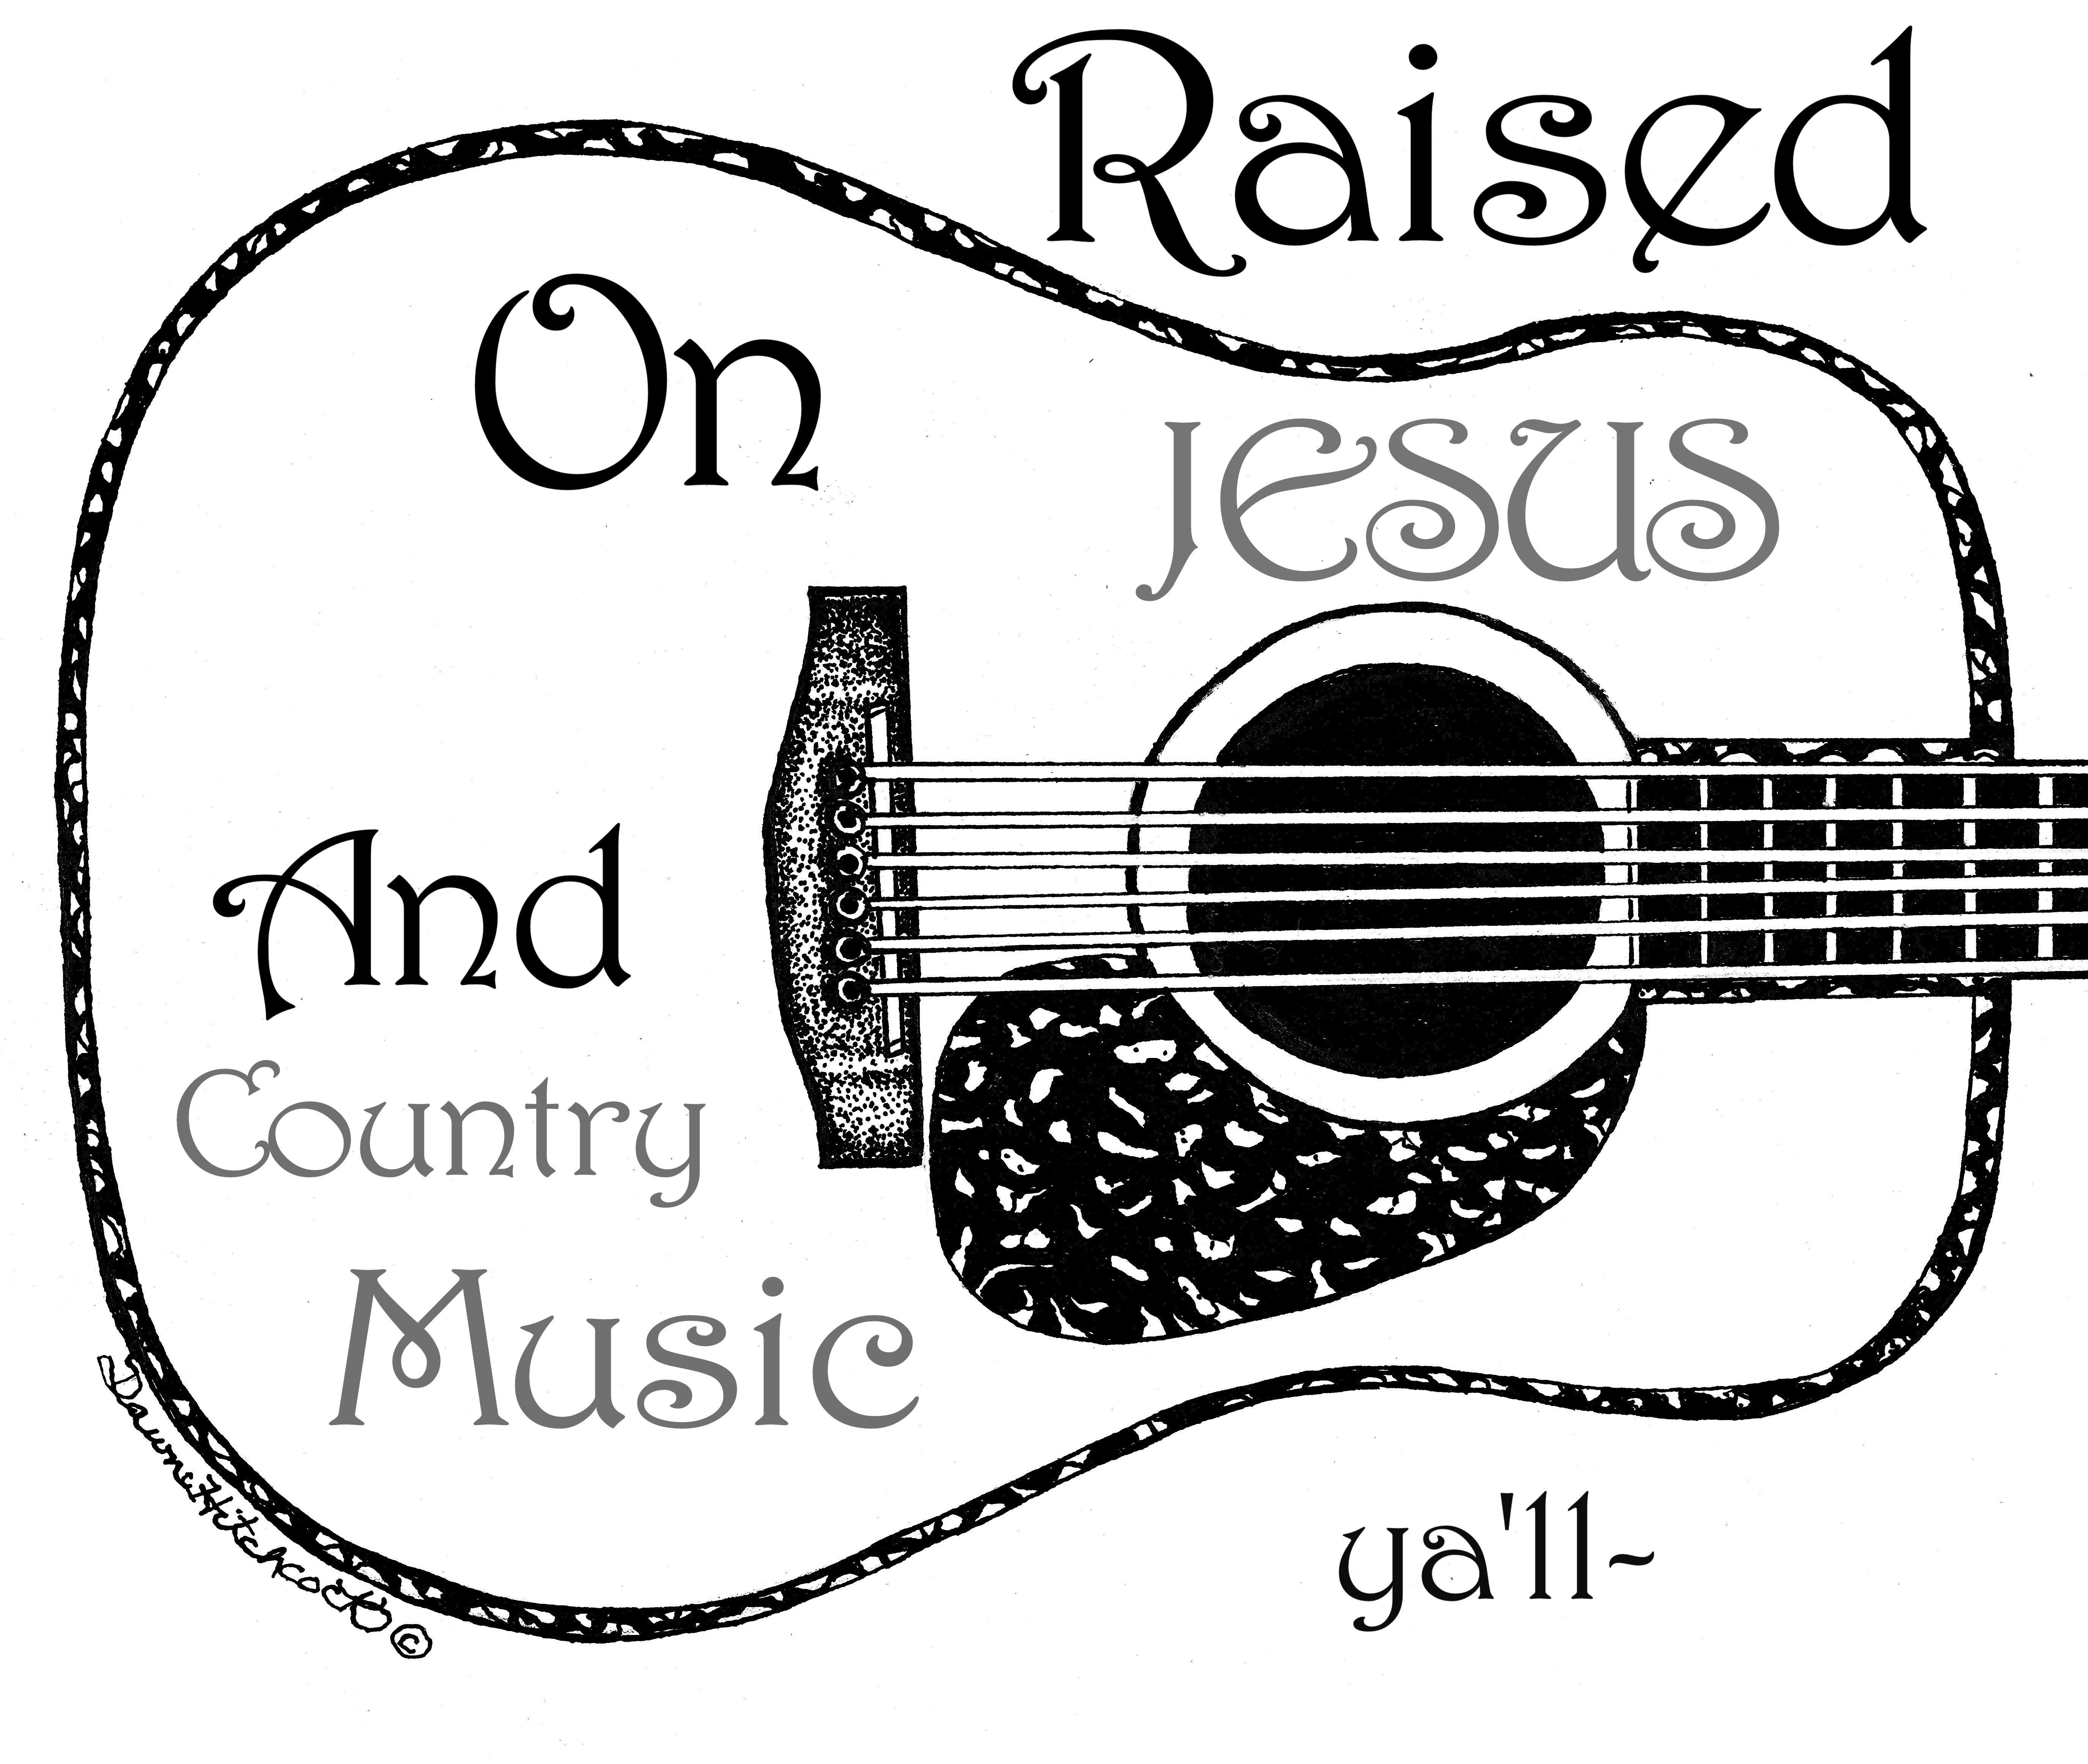 Country Music & Jesus Print, by Artist Dawn Hitchcock